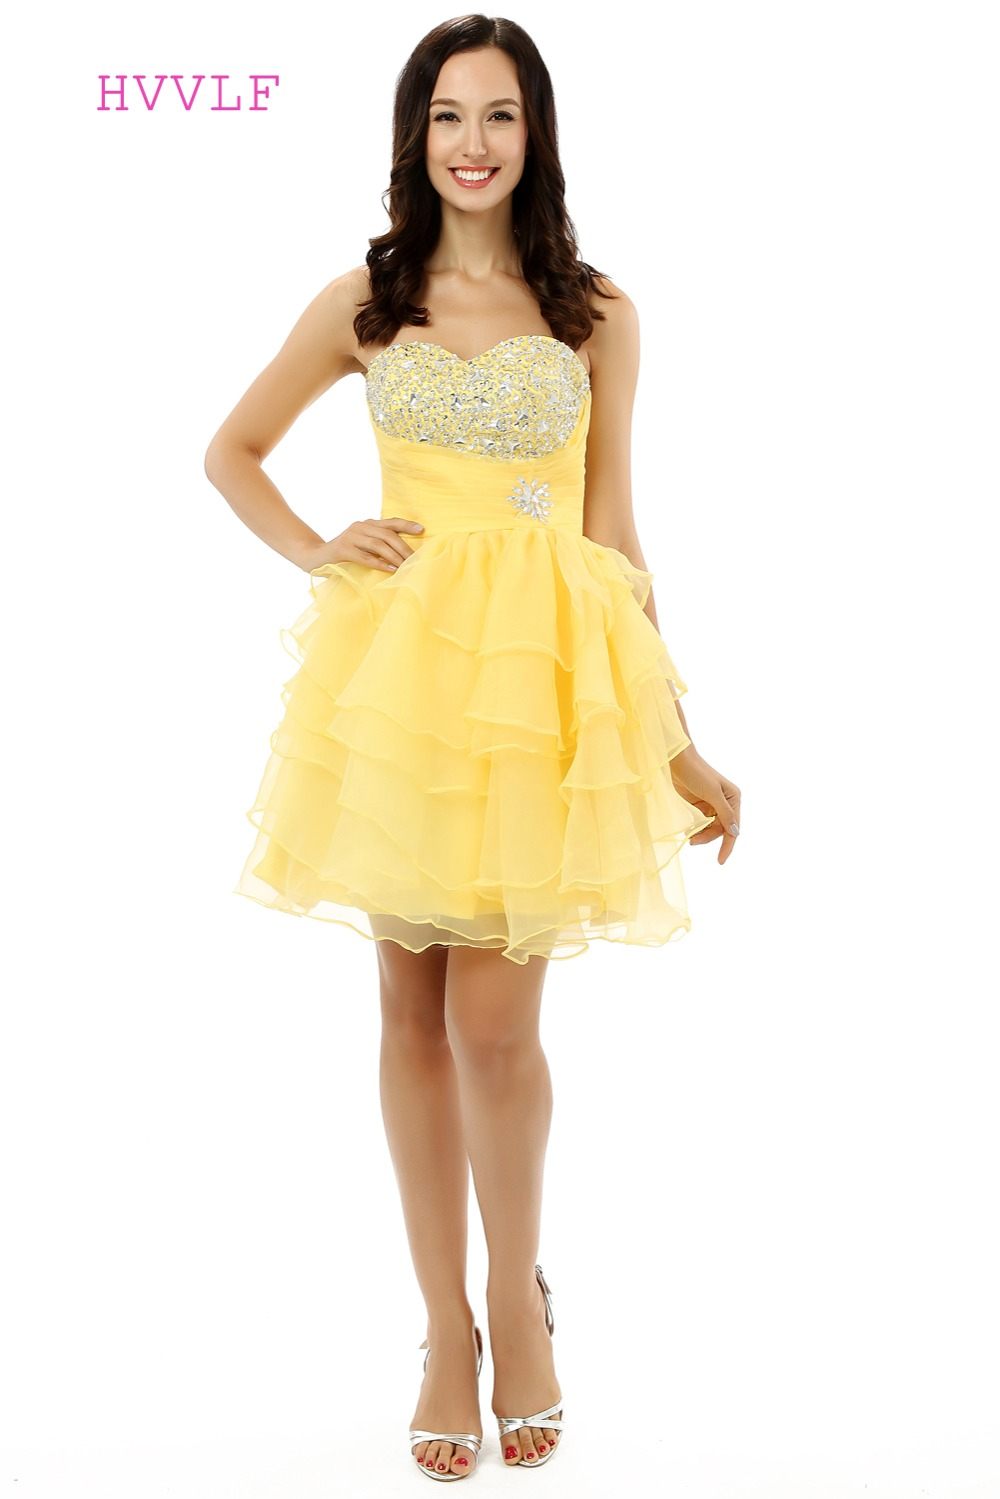 HVVLF Yellow 2019 Homecoming Dresses A-line Sweetheart Short Mini Organza Beaded Crystals Tiered Cocktail Dresses